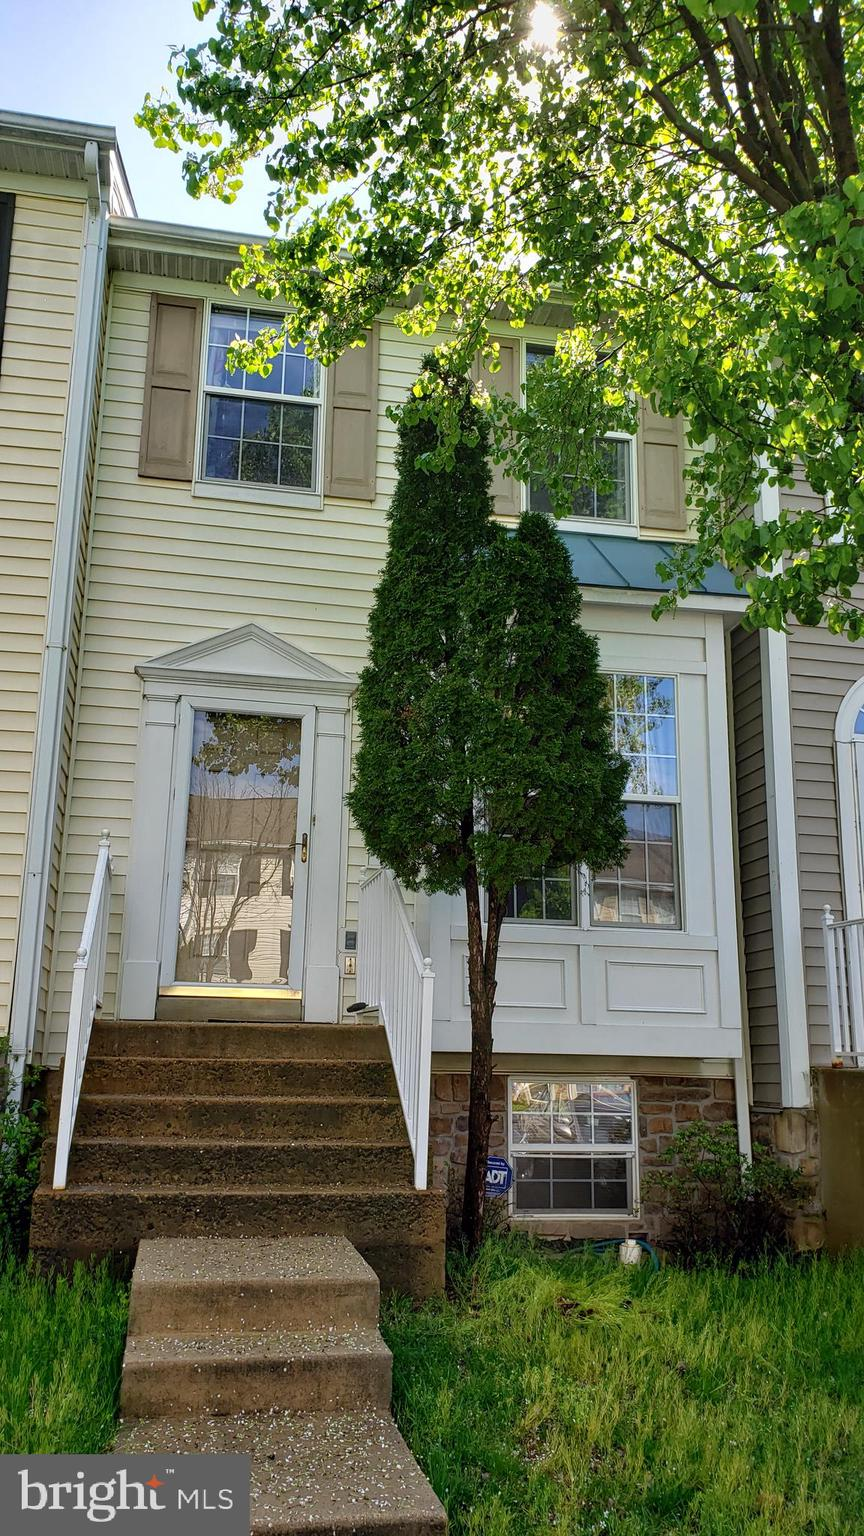 Great Location, It is conveniently located near~ of I-95, Potomac Mills Mall, Restaurants, Grocery Stores, Commuter Lots, and much more. Bus stop at entrance to subdivision. 3 level townhouse with 3 bedrooms and 2 & 1/2 bathrooms. Granite in large eat-in kitchen. Fully finished walk out basement. Fenced backyard. Deck off kitchen overlooks trees, not neighbors.